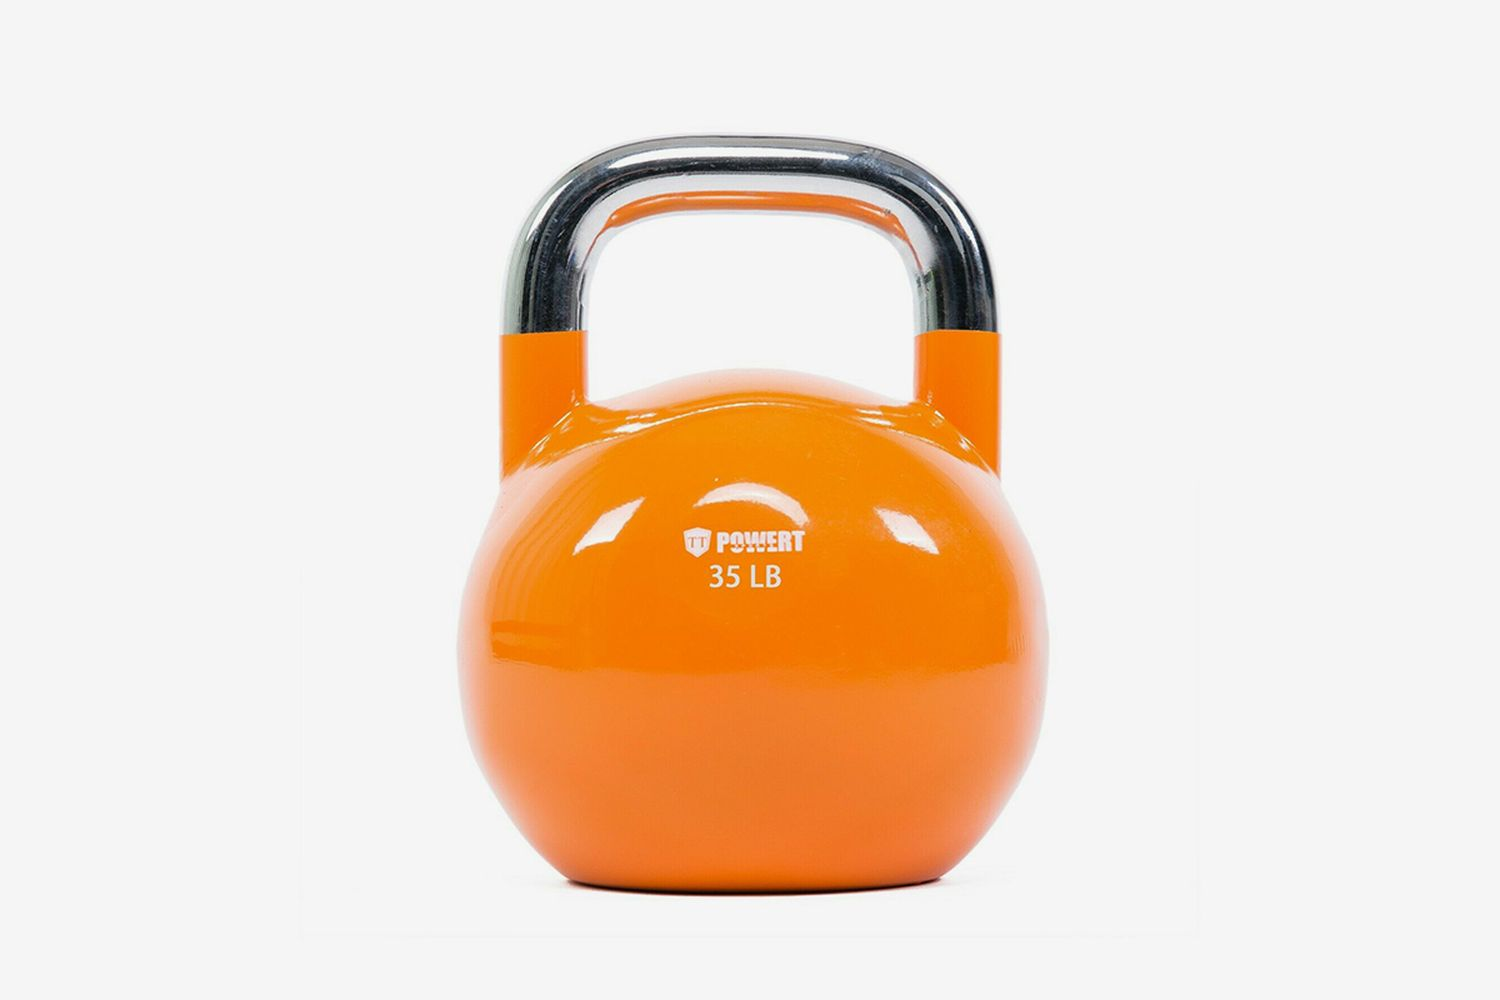 Coated Steel Competition Kettlebell 35LB